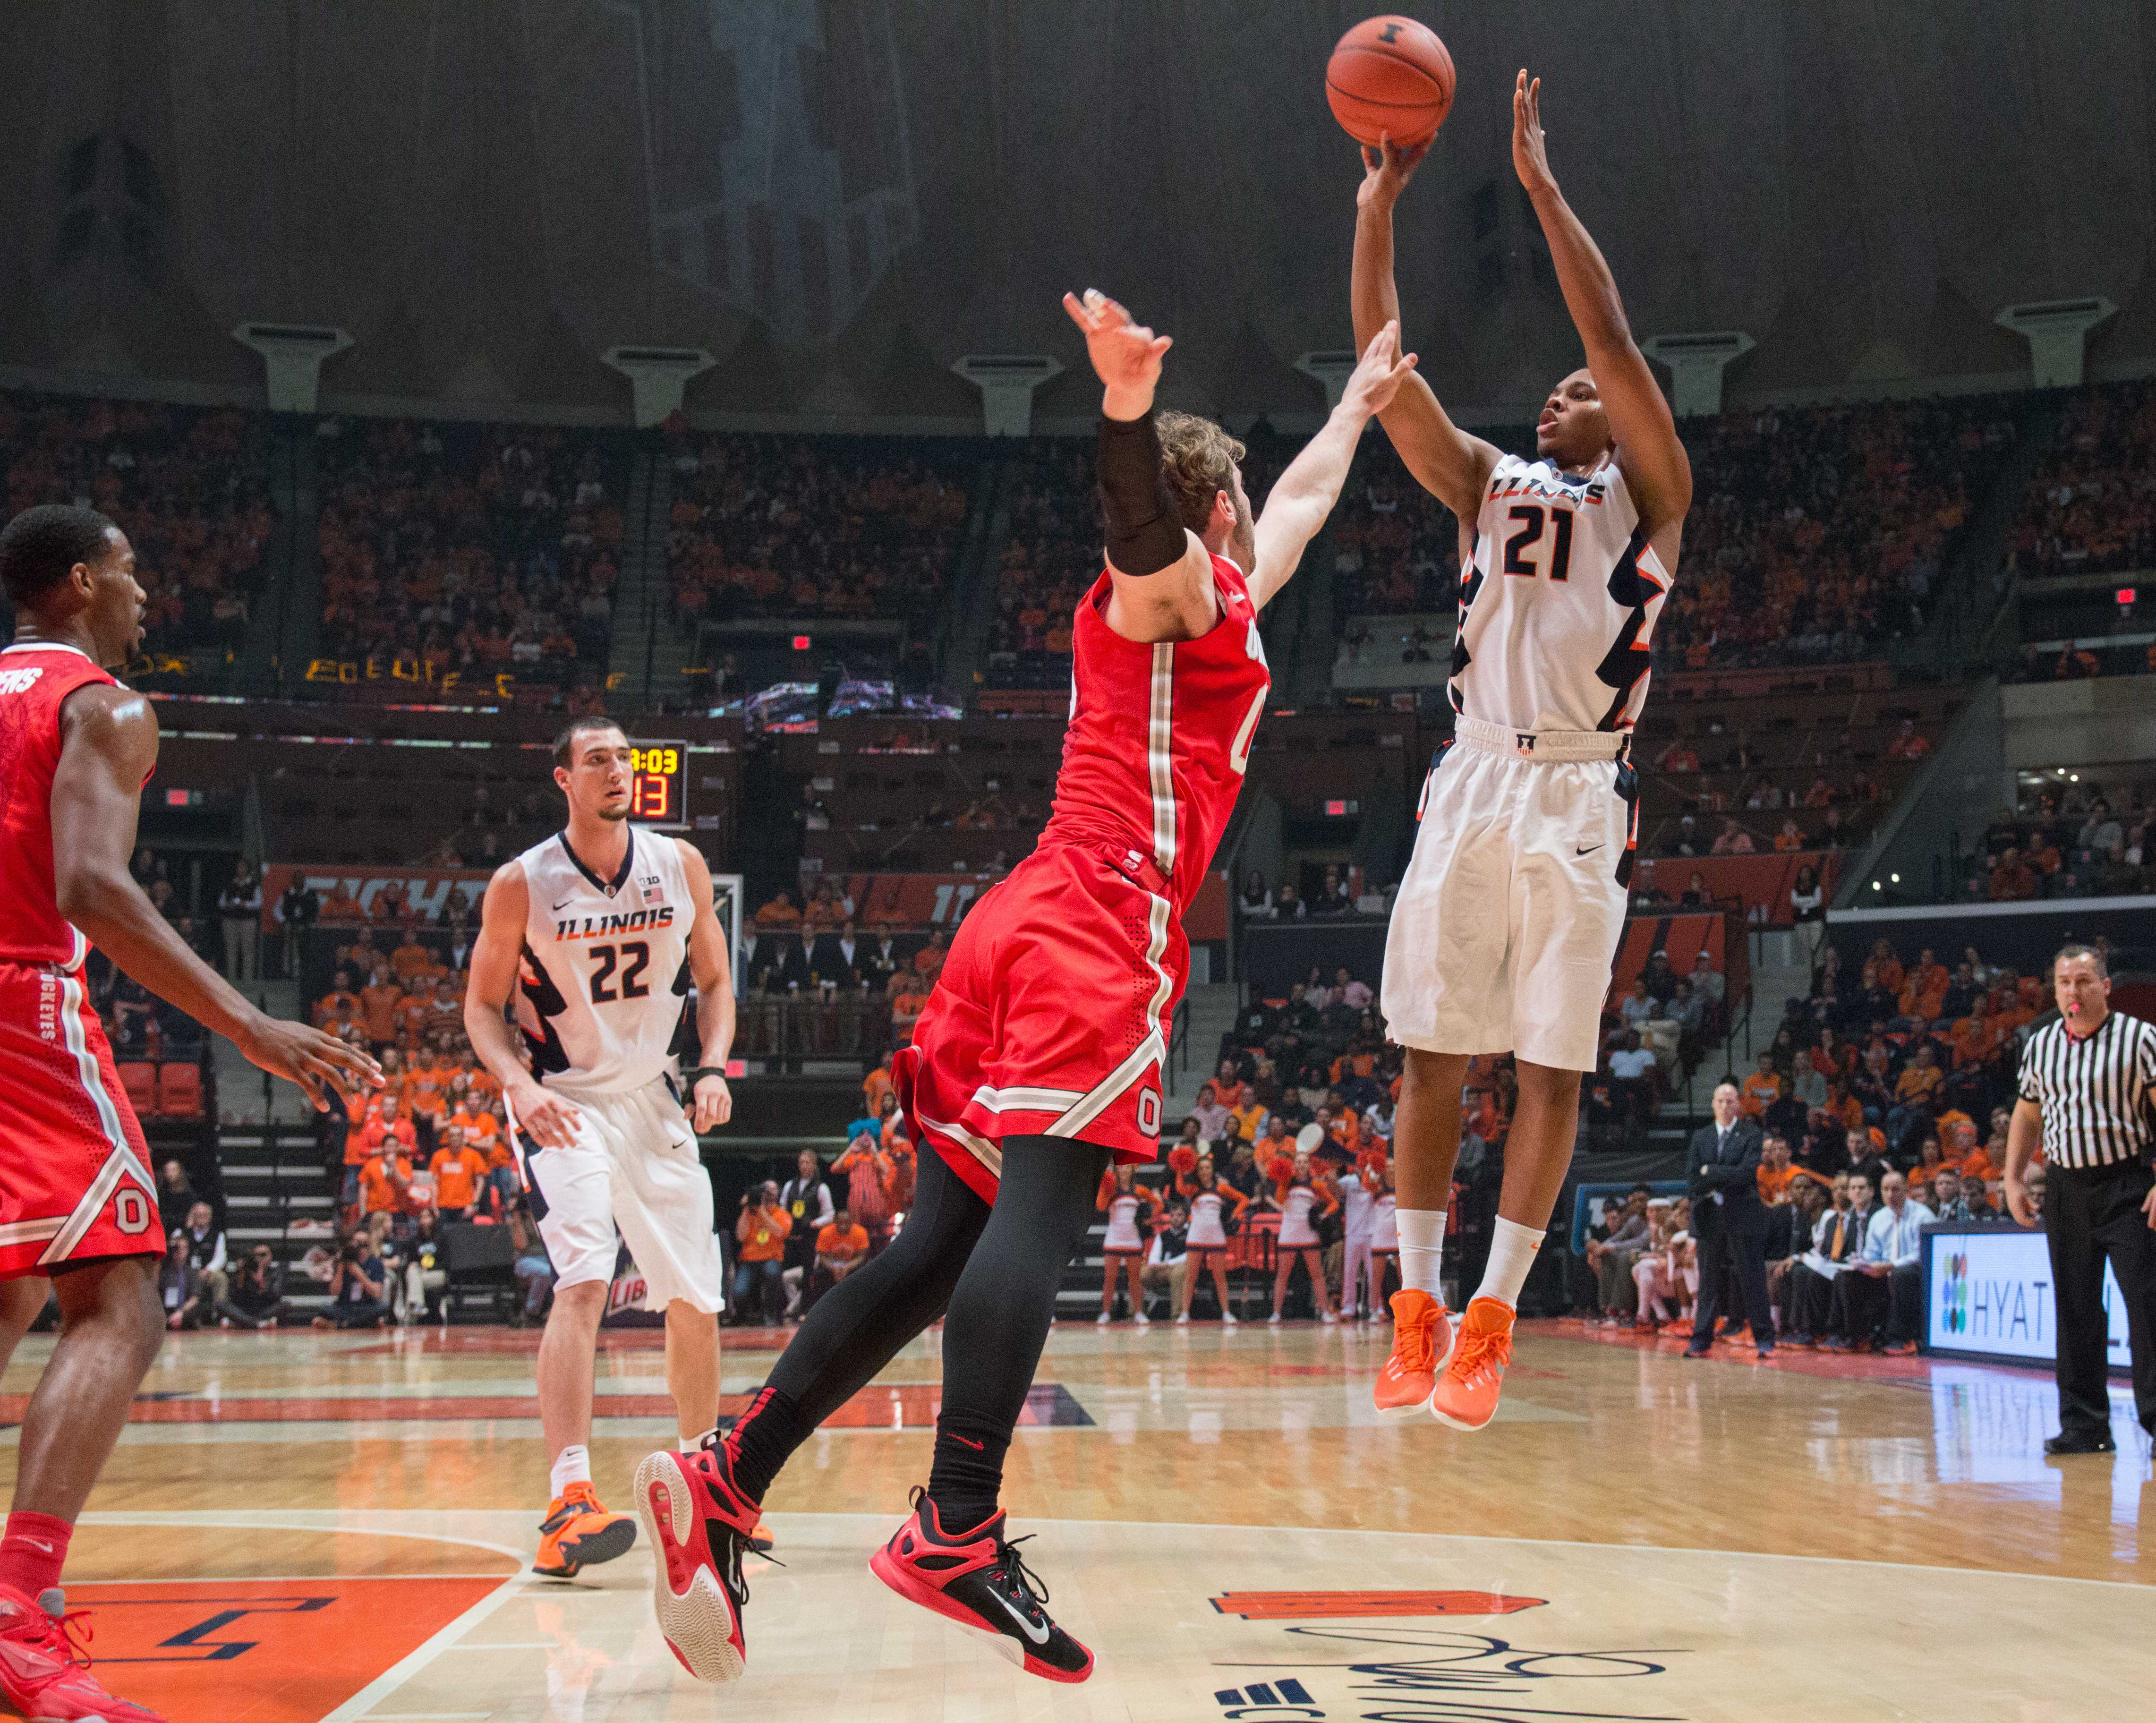 Malcolm Hill (21) rises up for jumper during Illinois' 68-63 loss to Ohio State on Thursday, Jan. 28 at State Farm Center. Hill shot 3-for-14 and Illinois went 18-for-56 from the field in the overtime defeat.